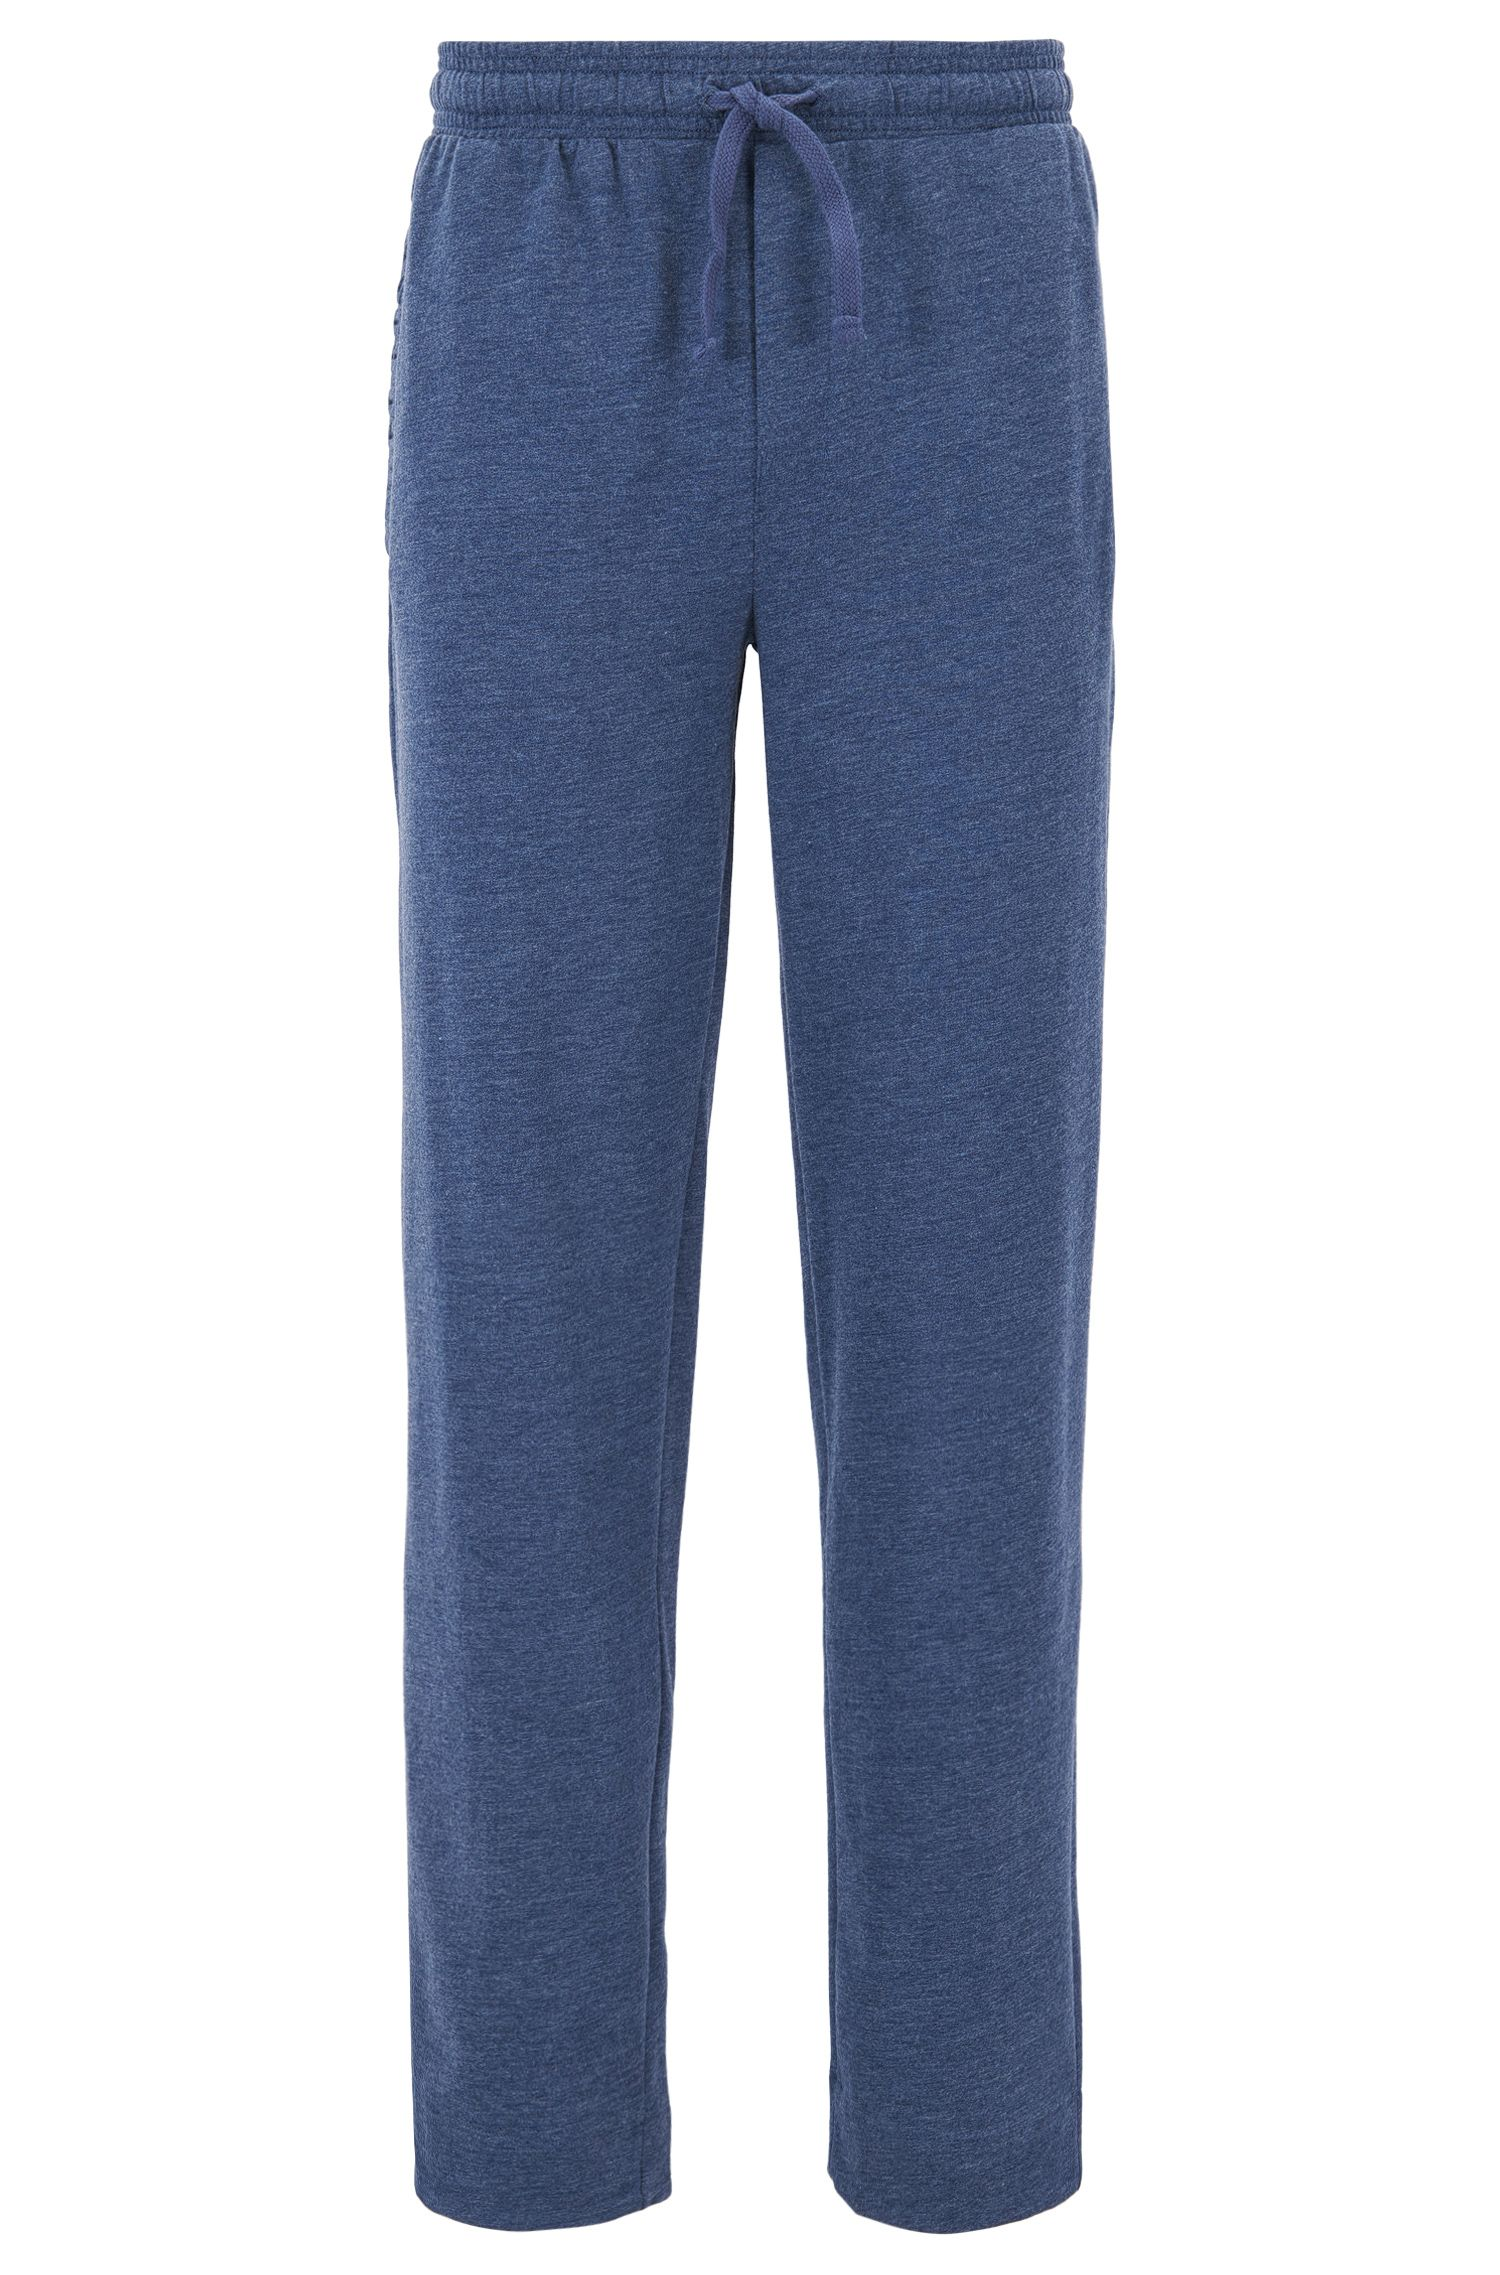 Pantalon de pyjama en molleton French Terry chiné